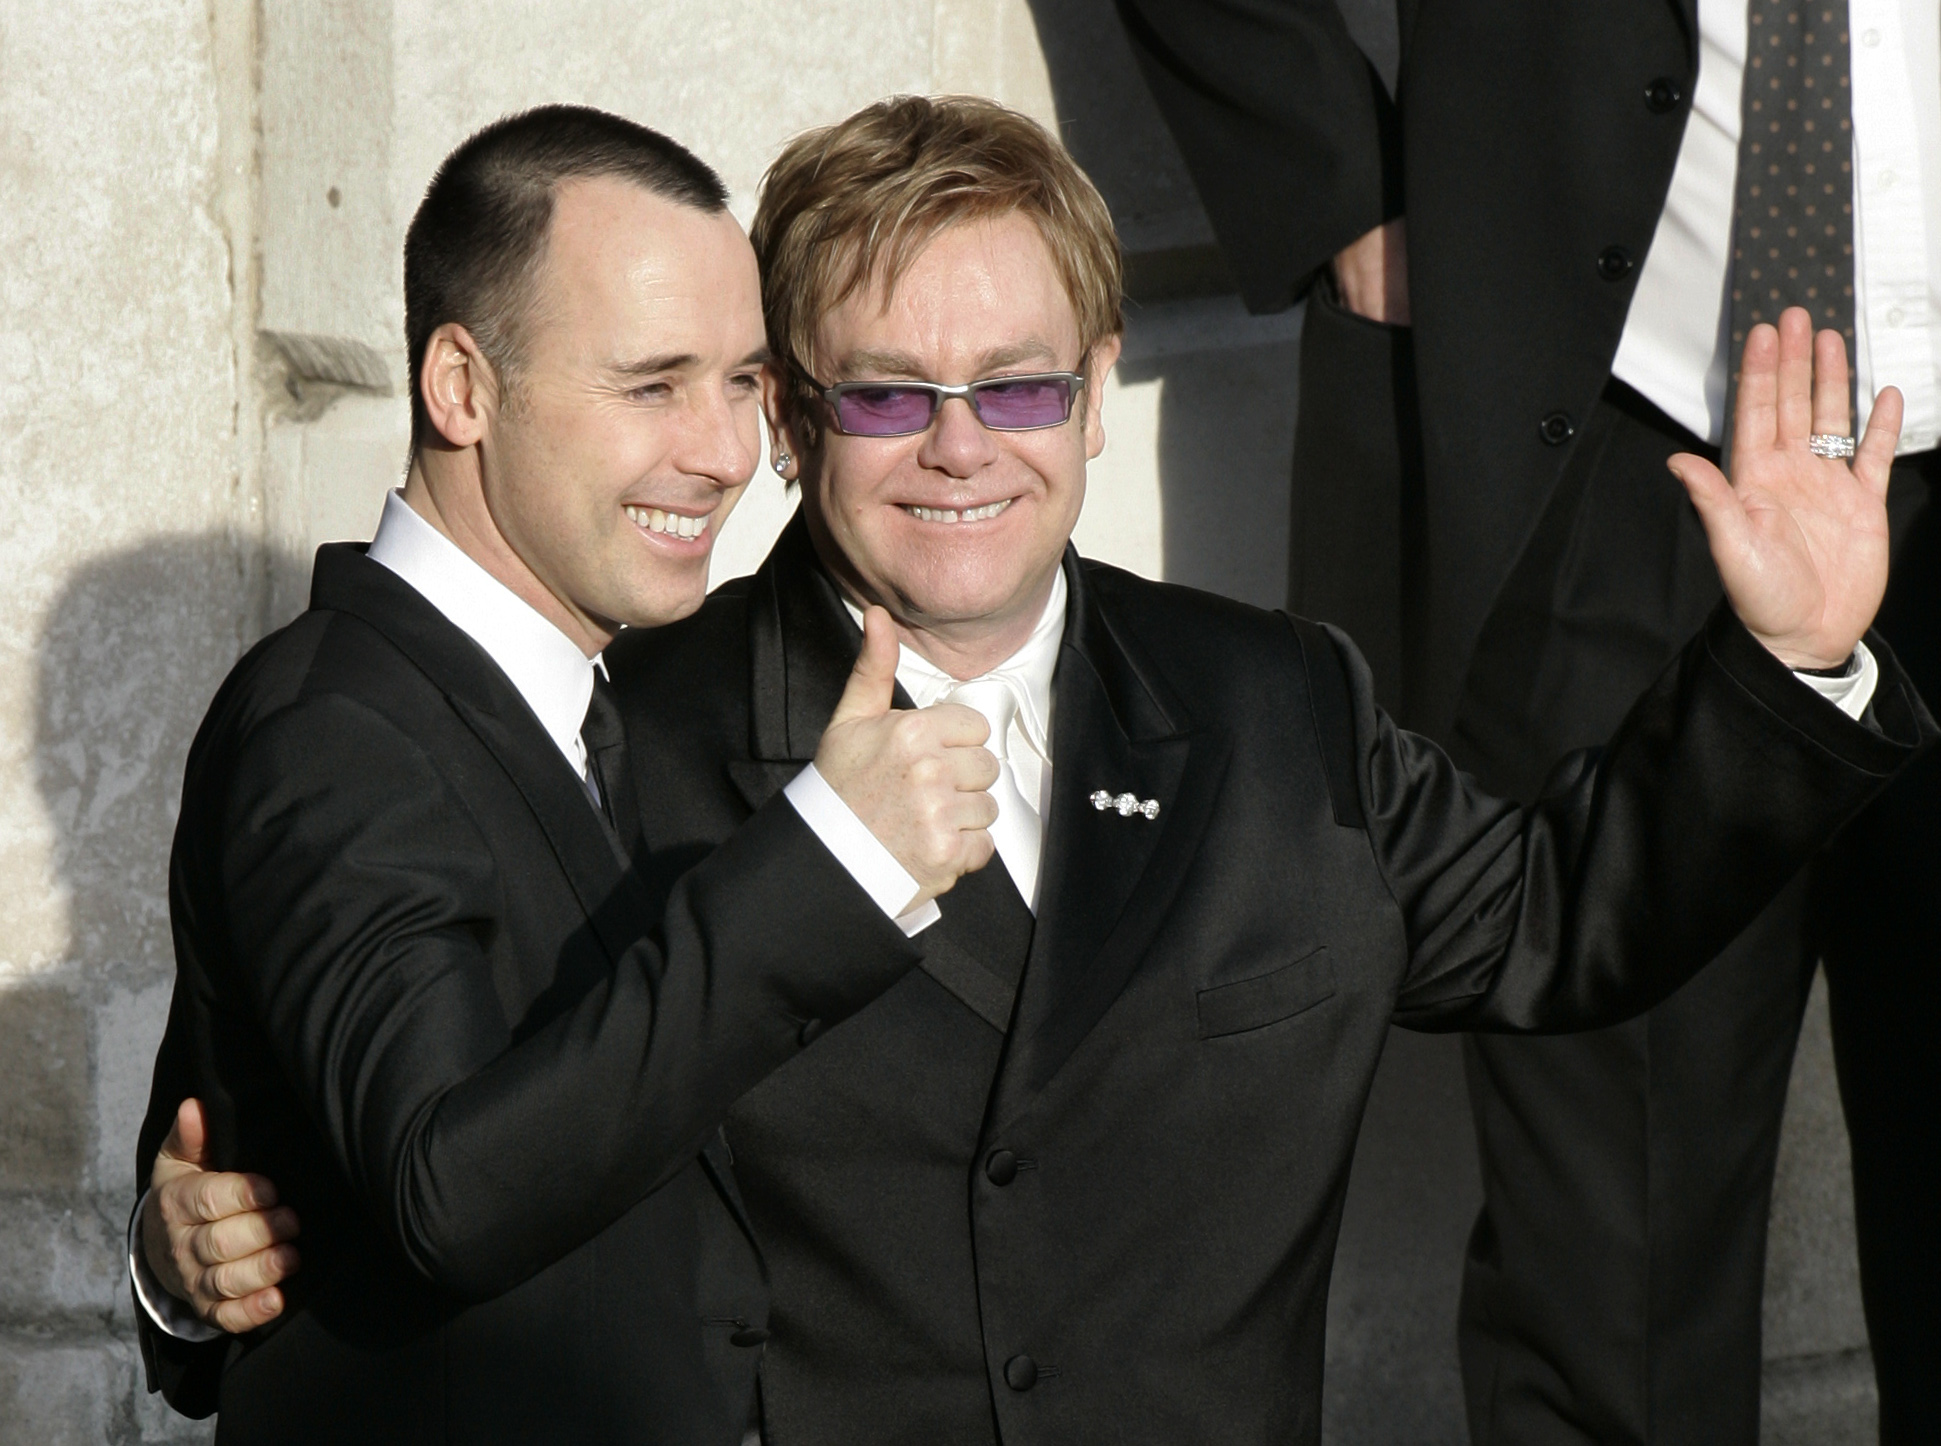 The handwritten note Adele sent apologising for missing Elton John's wedding